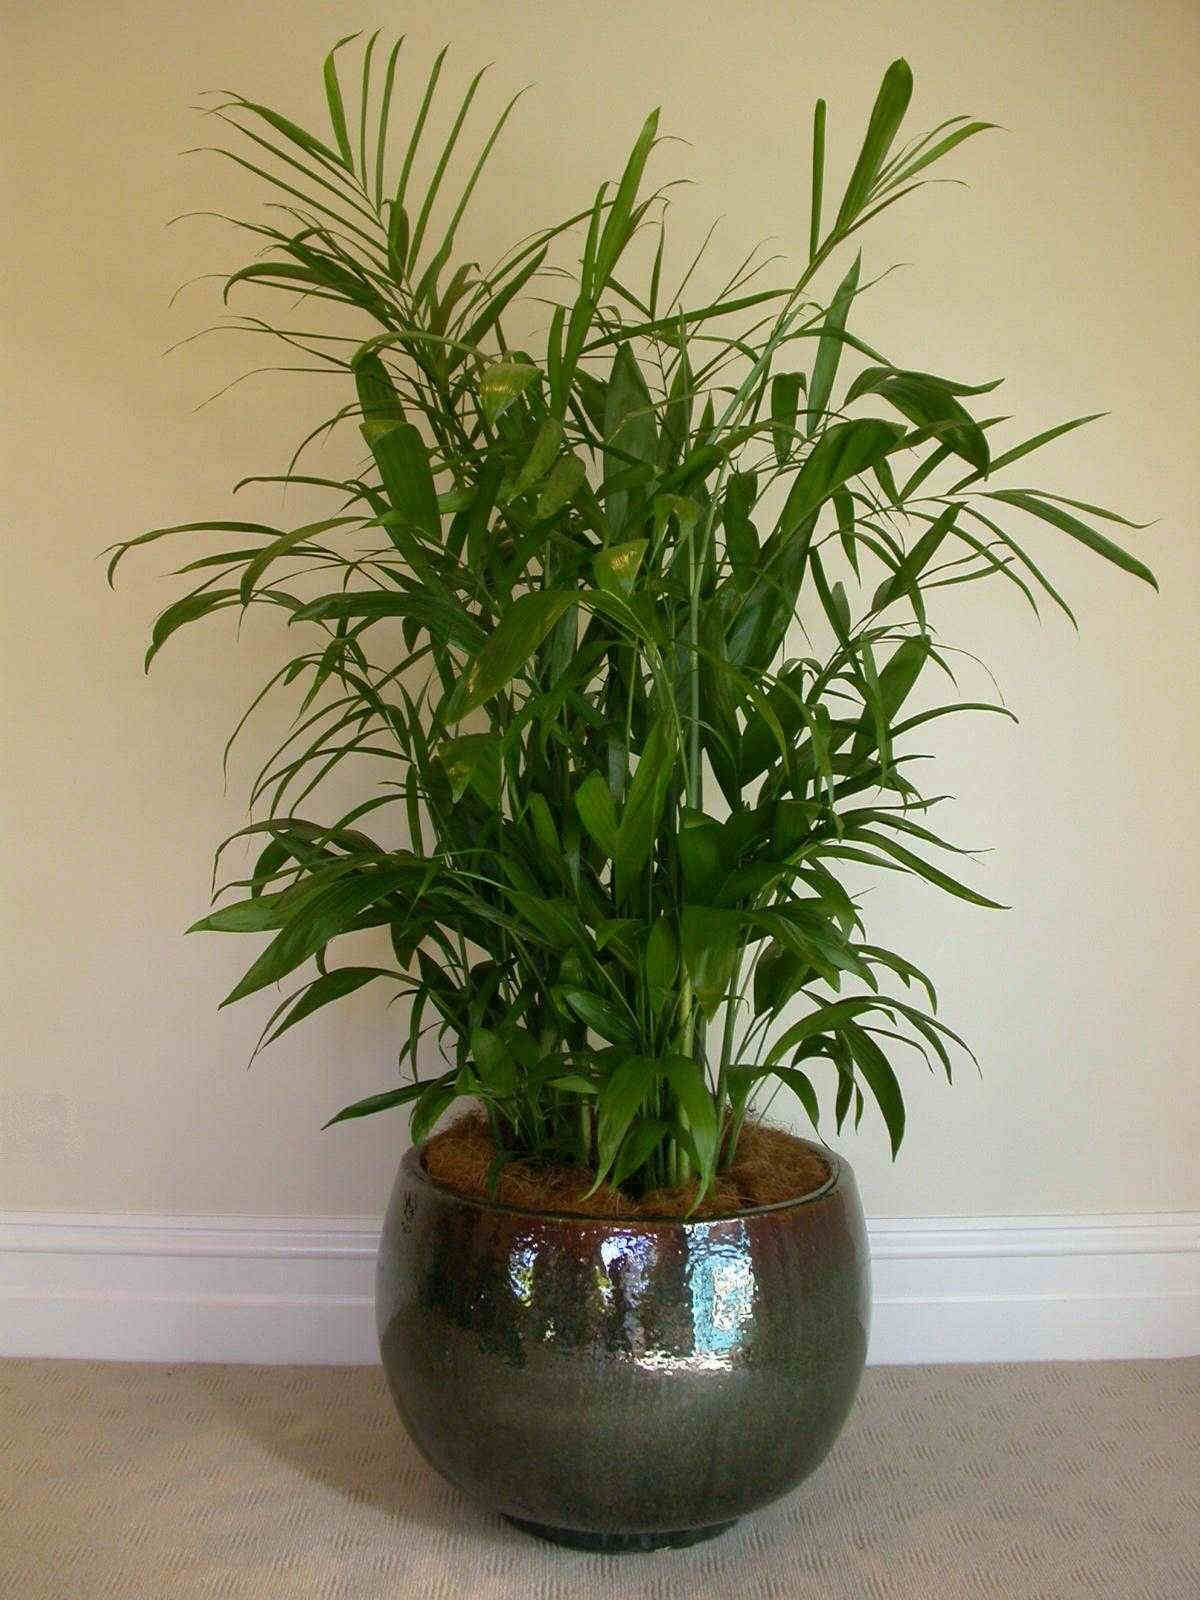 Non Toxic House Plants For Better Iaq Living Room: 7 uncommon indoor plants